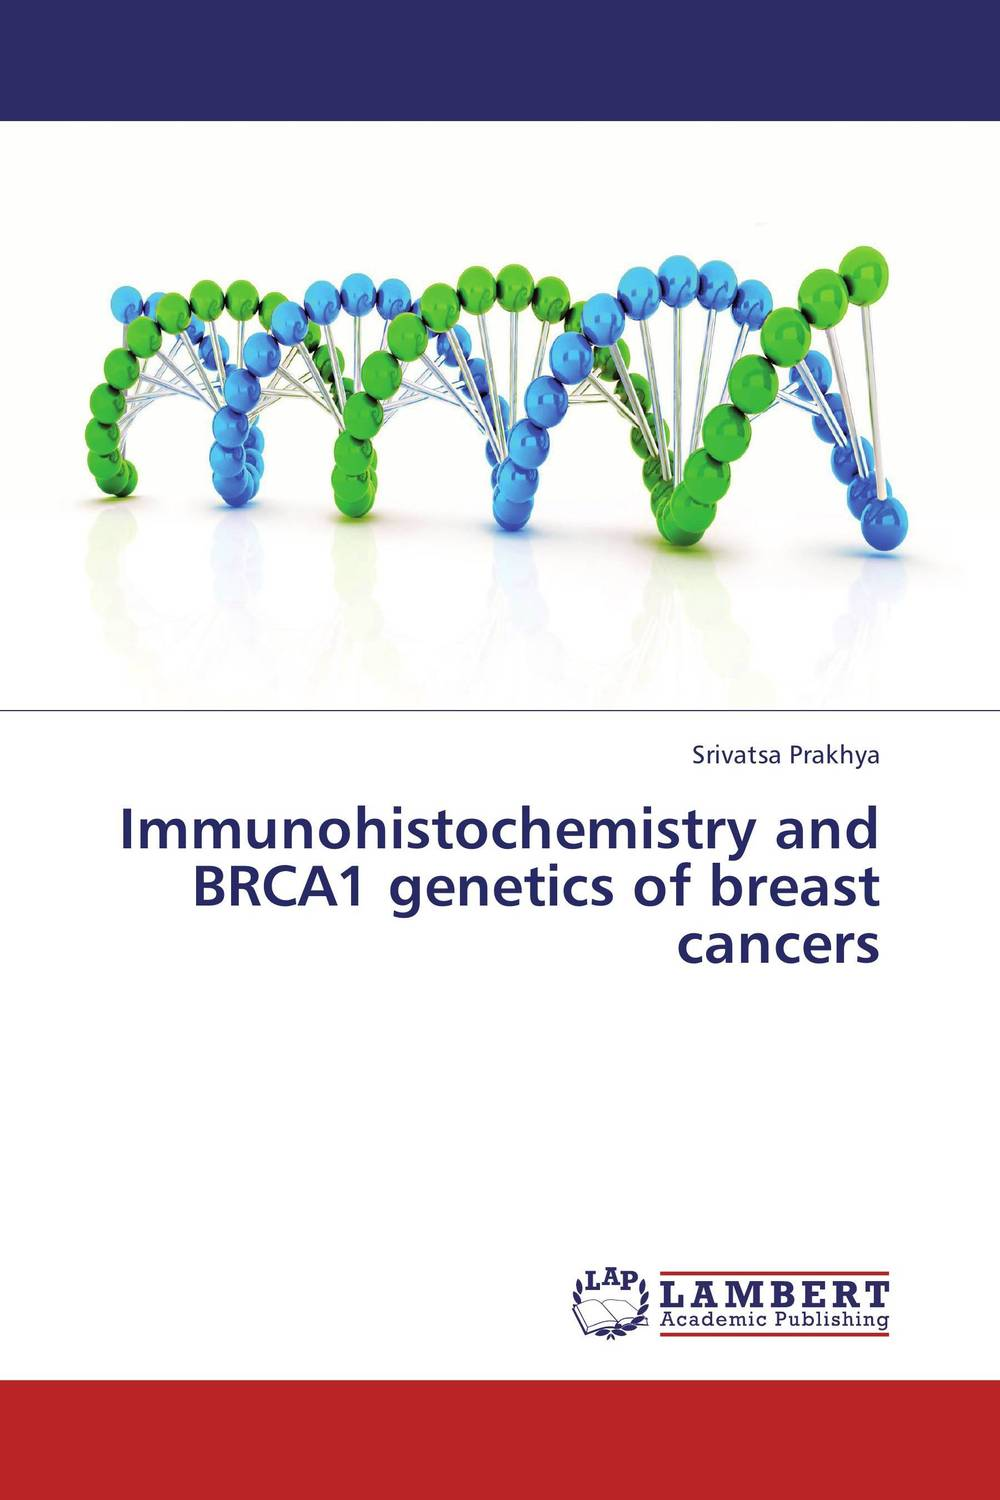 Immunohistochemistry and BRCA1 genetics of breast cancers gene therapy for breast cancer treatment